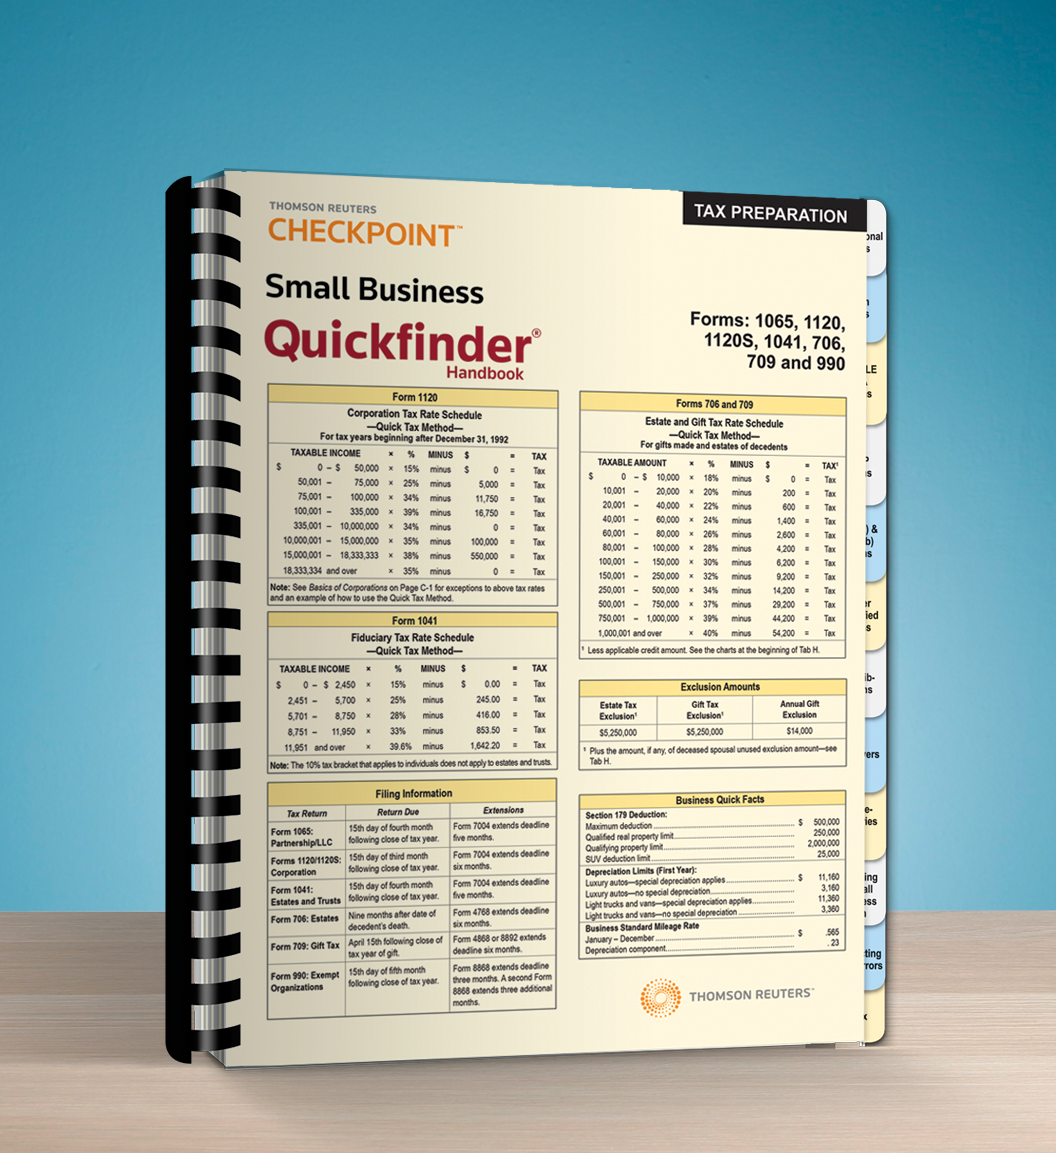 Small Business Quickfinder Handbook (2016) - #3685